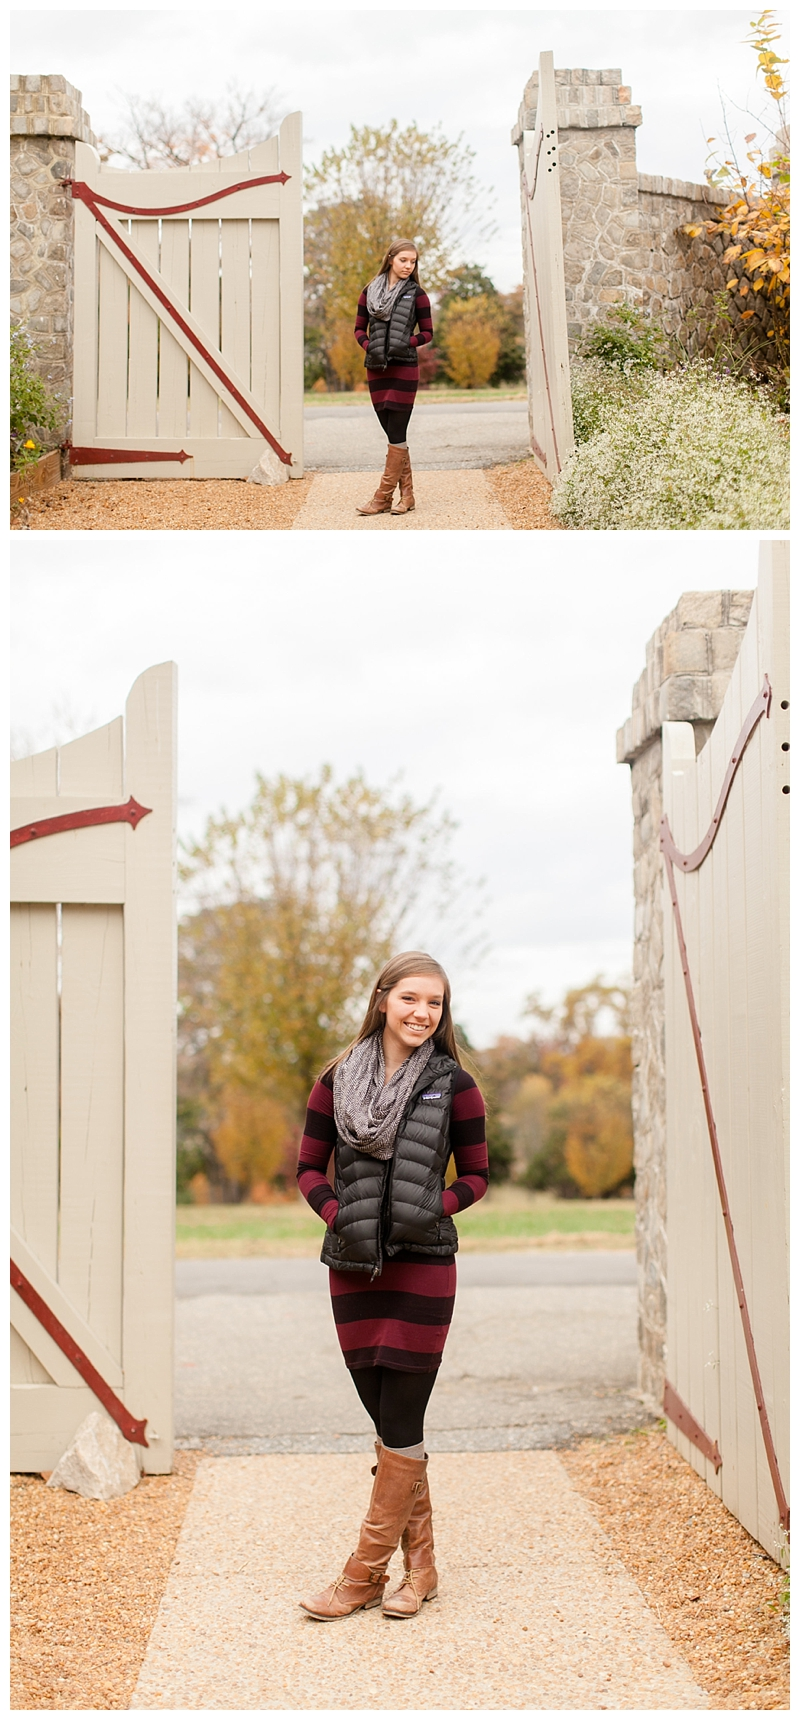 View More: http://kristimckeagphotography.pass.us/senior-tory